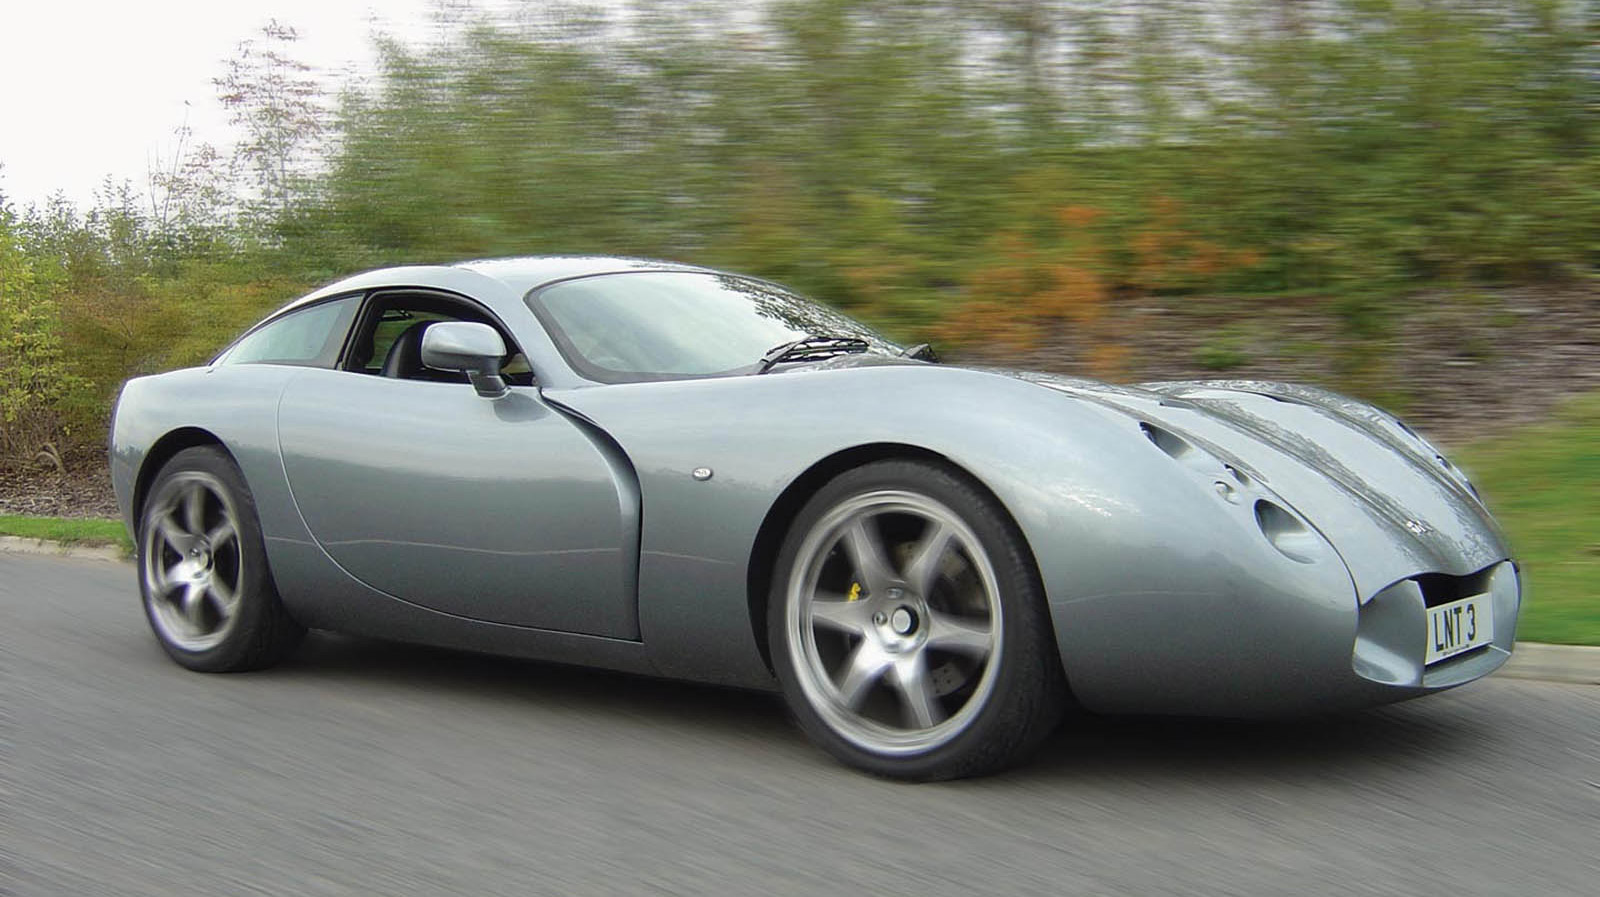 Car Pictures Wallpaper Net Speed Tvr Boss Gives Up On Building Cars Focuses On Wind Turbines